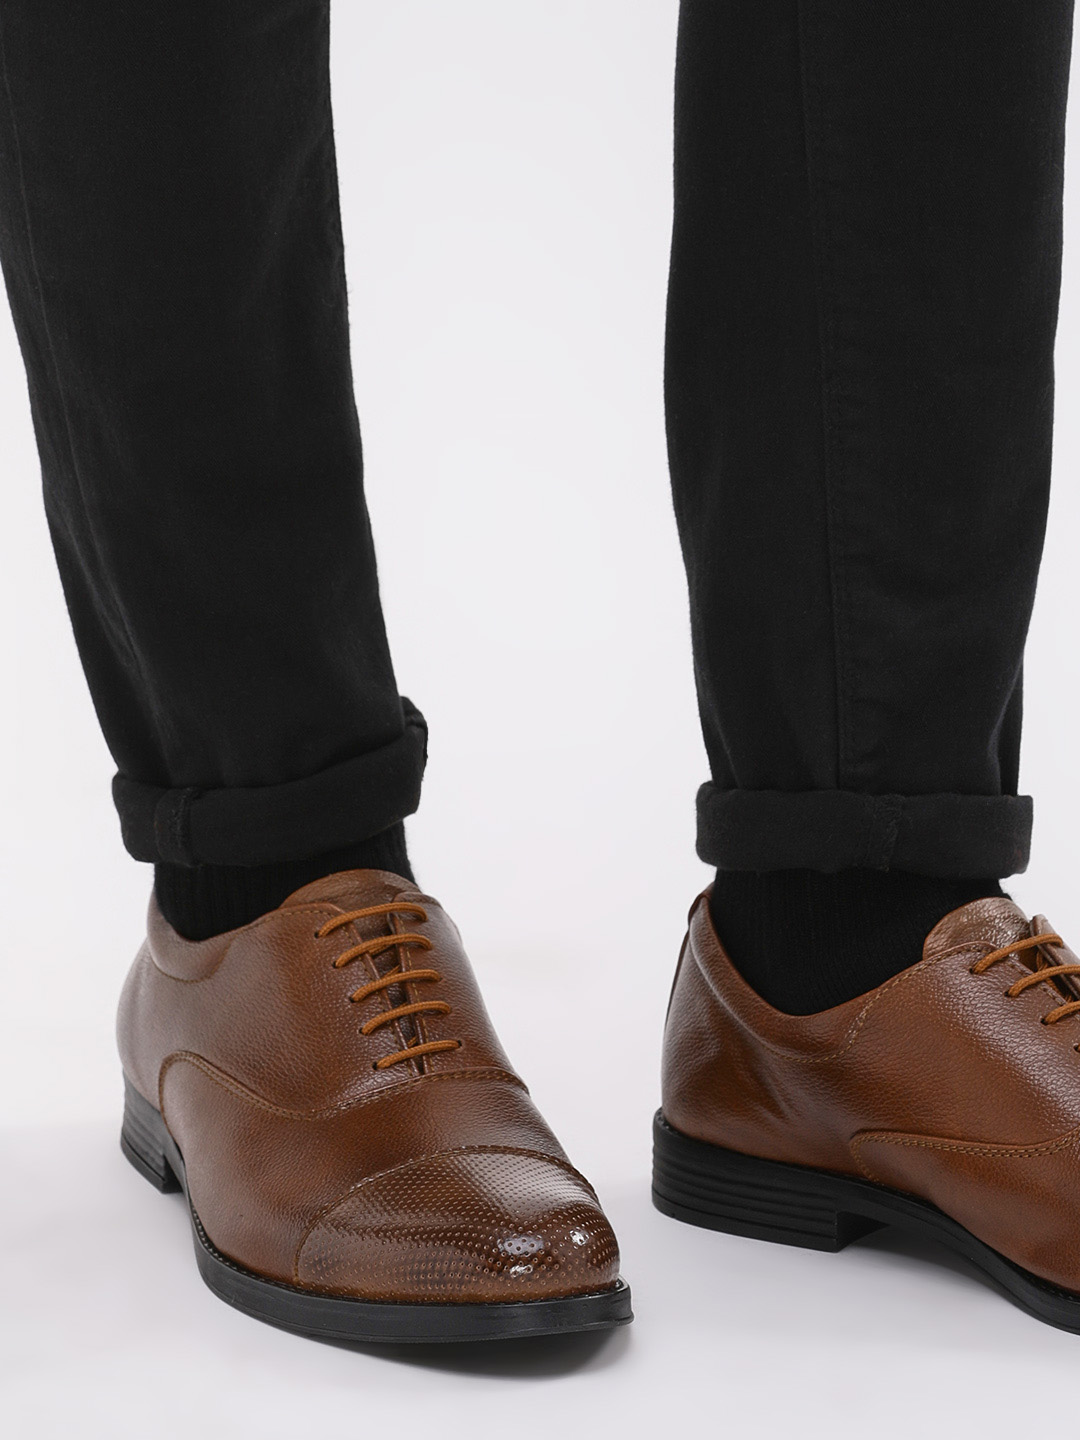 KOOVS Tan Oxford Shoes With Perforated Toe Cap 1